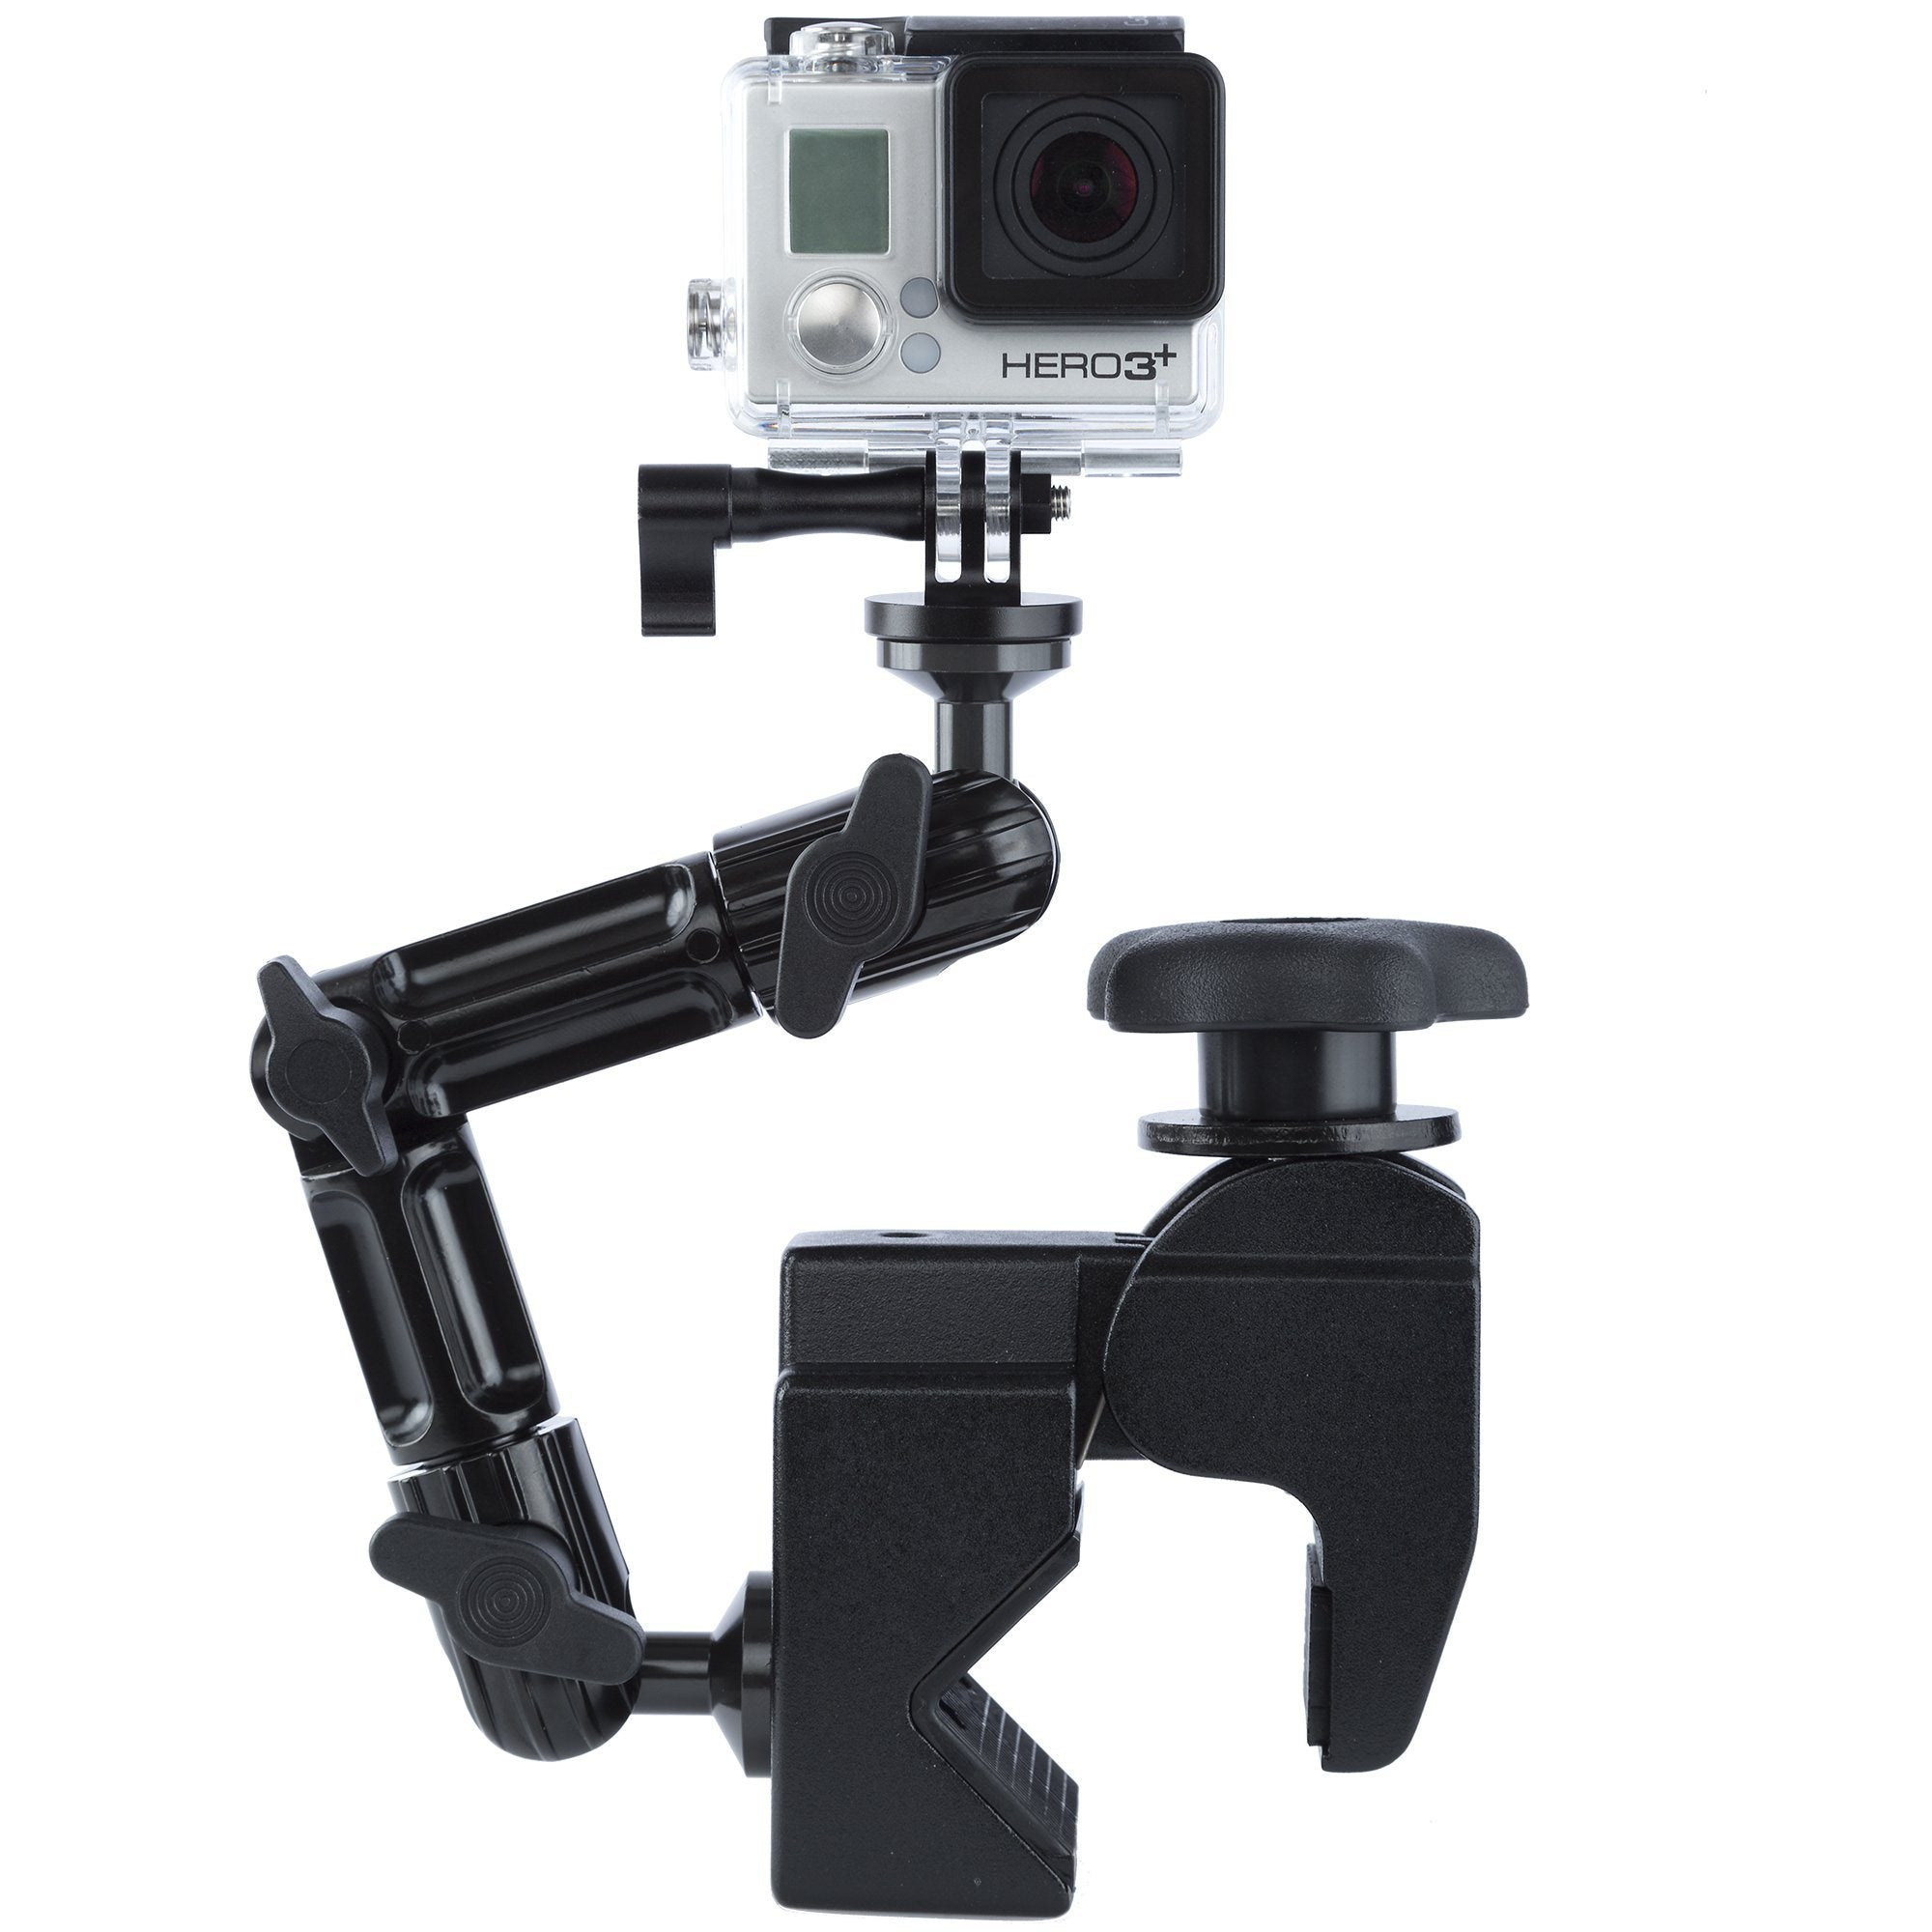 Roll Cage Mount for GoPro and Action Cameras Tackform